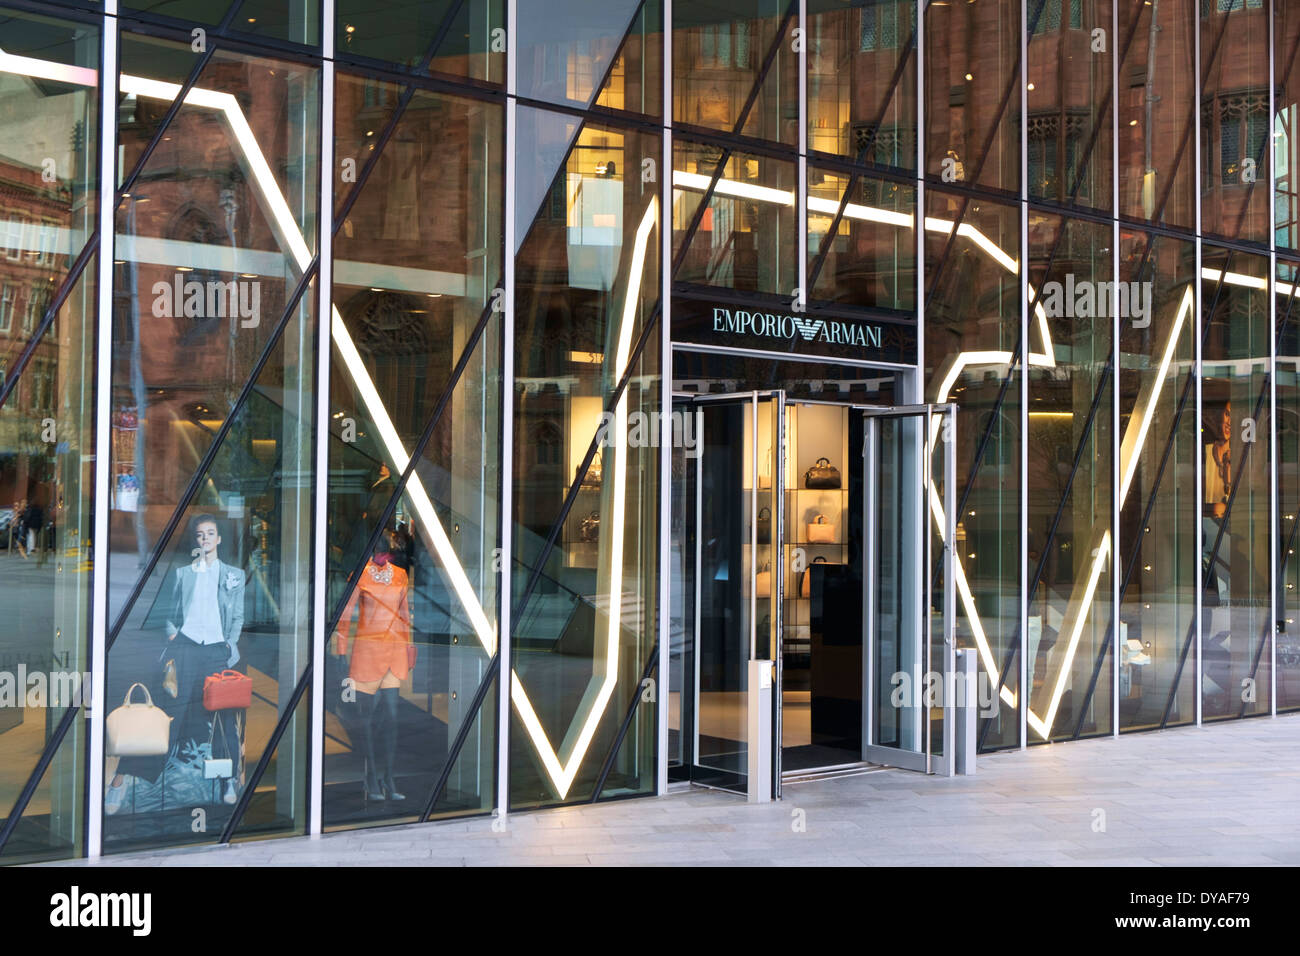 Emporio Armani store on Spinningfields Square, off Deansgate, Manchester, England, UK - Stock Image